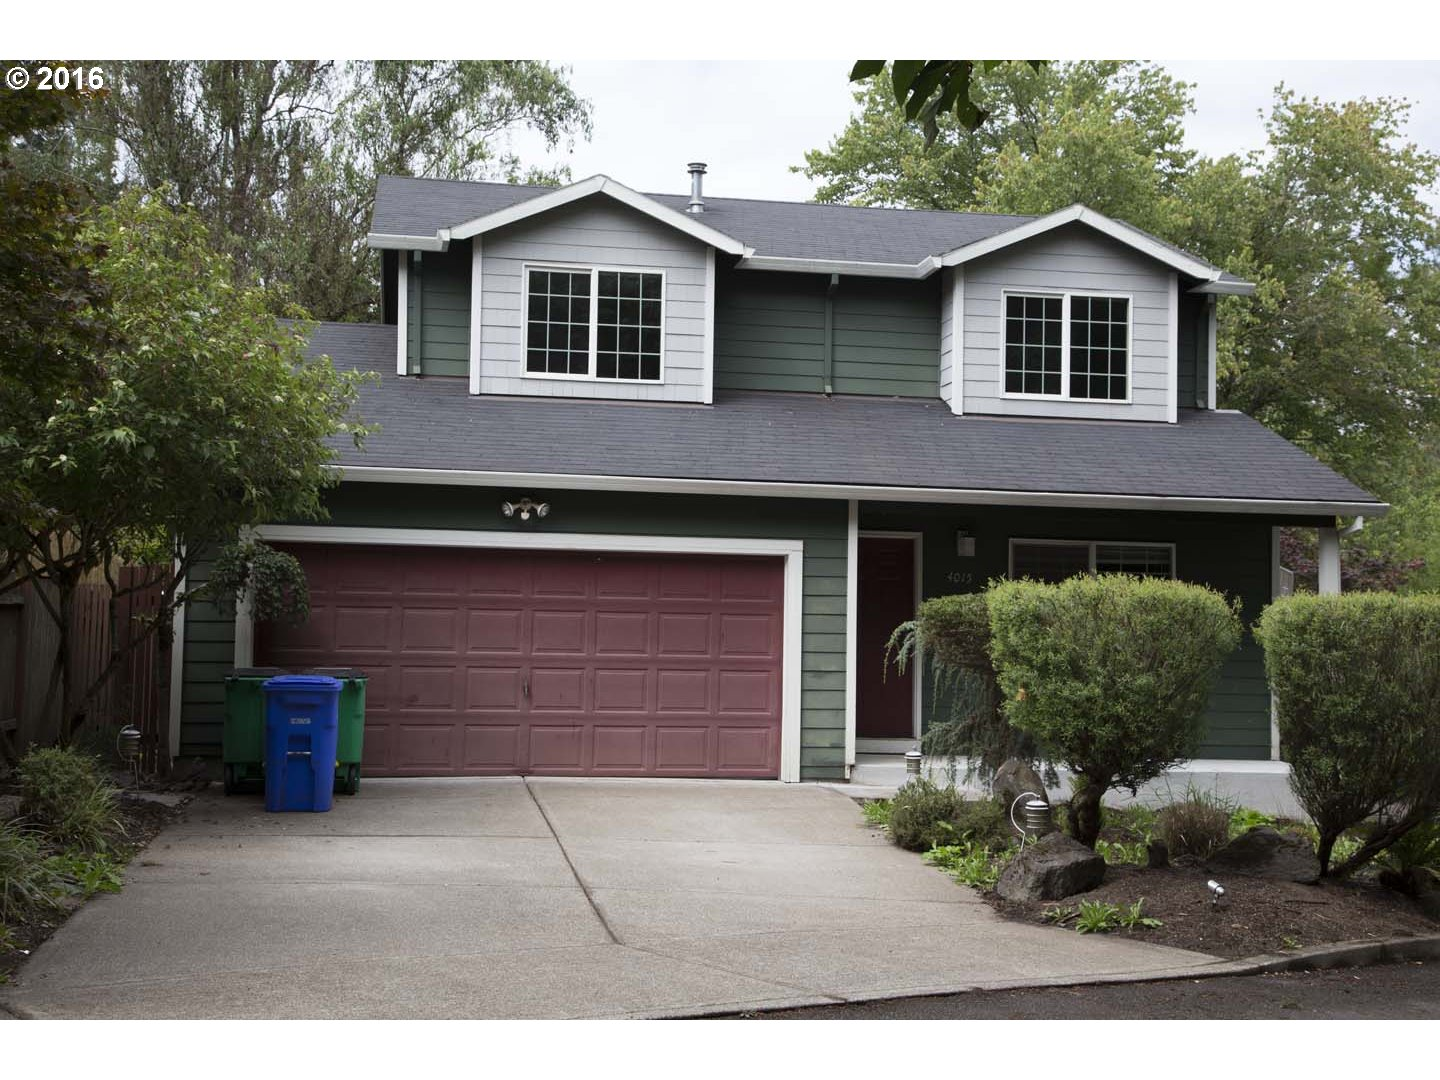 1410 sq. ft 3 bedrooms 2 bathrooms  House , Portland, OR